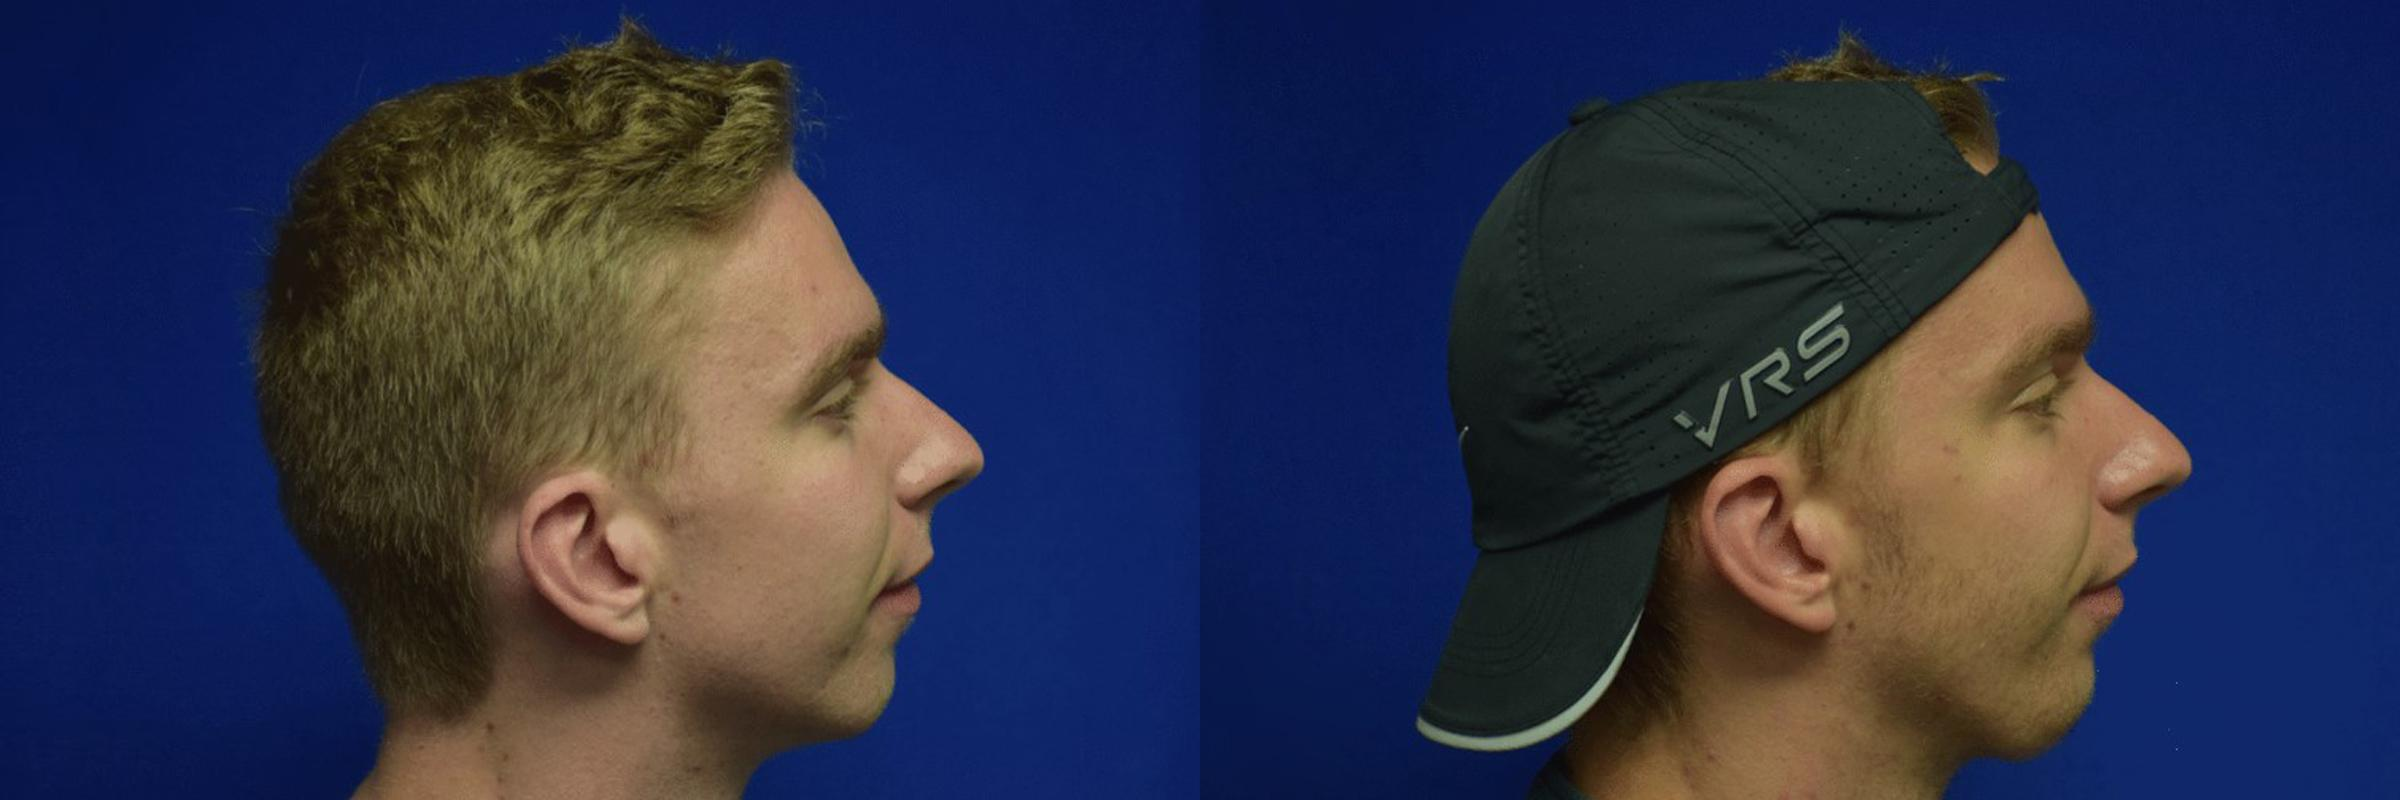 Chin Implant Before & After Photos | Ahmed Sufyan, MD